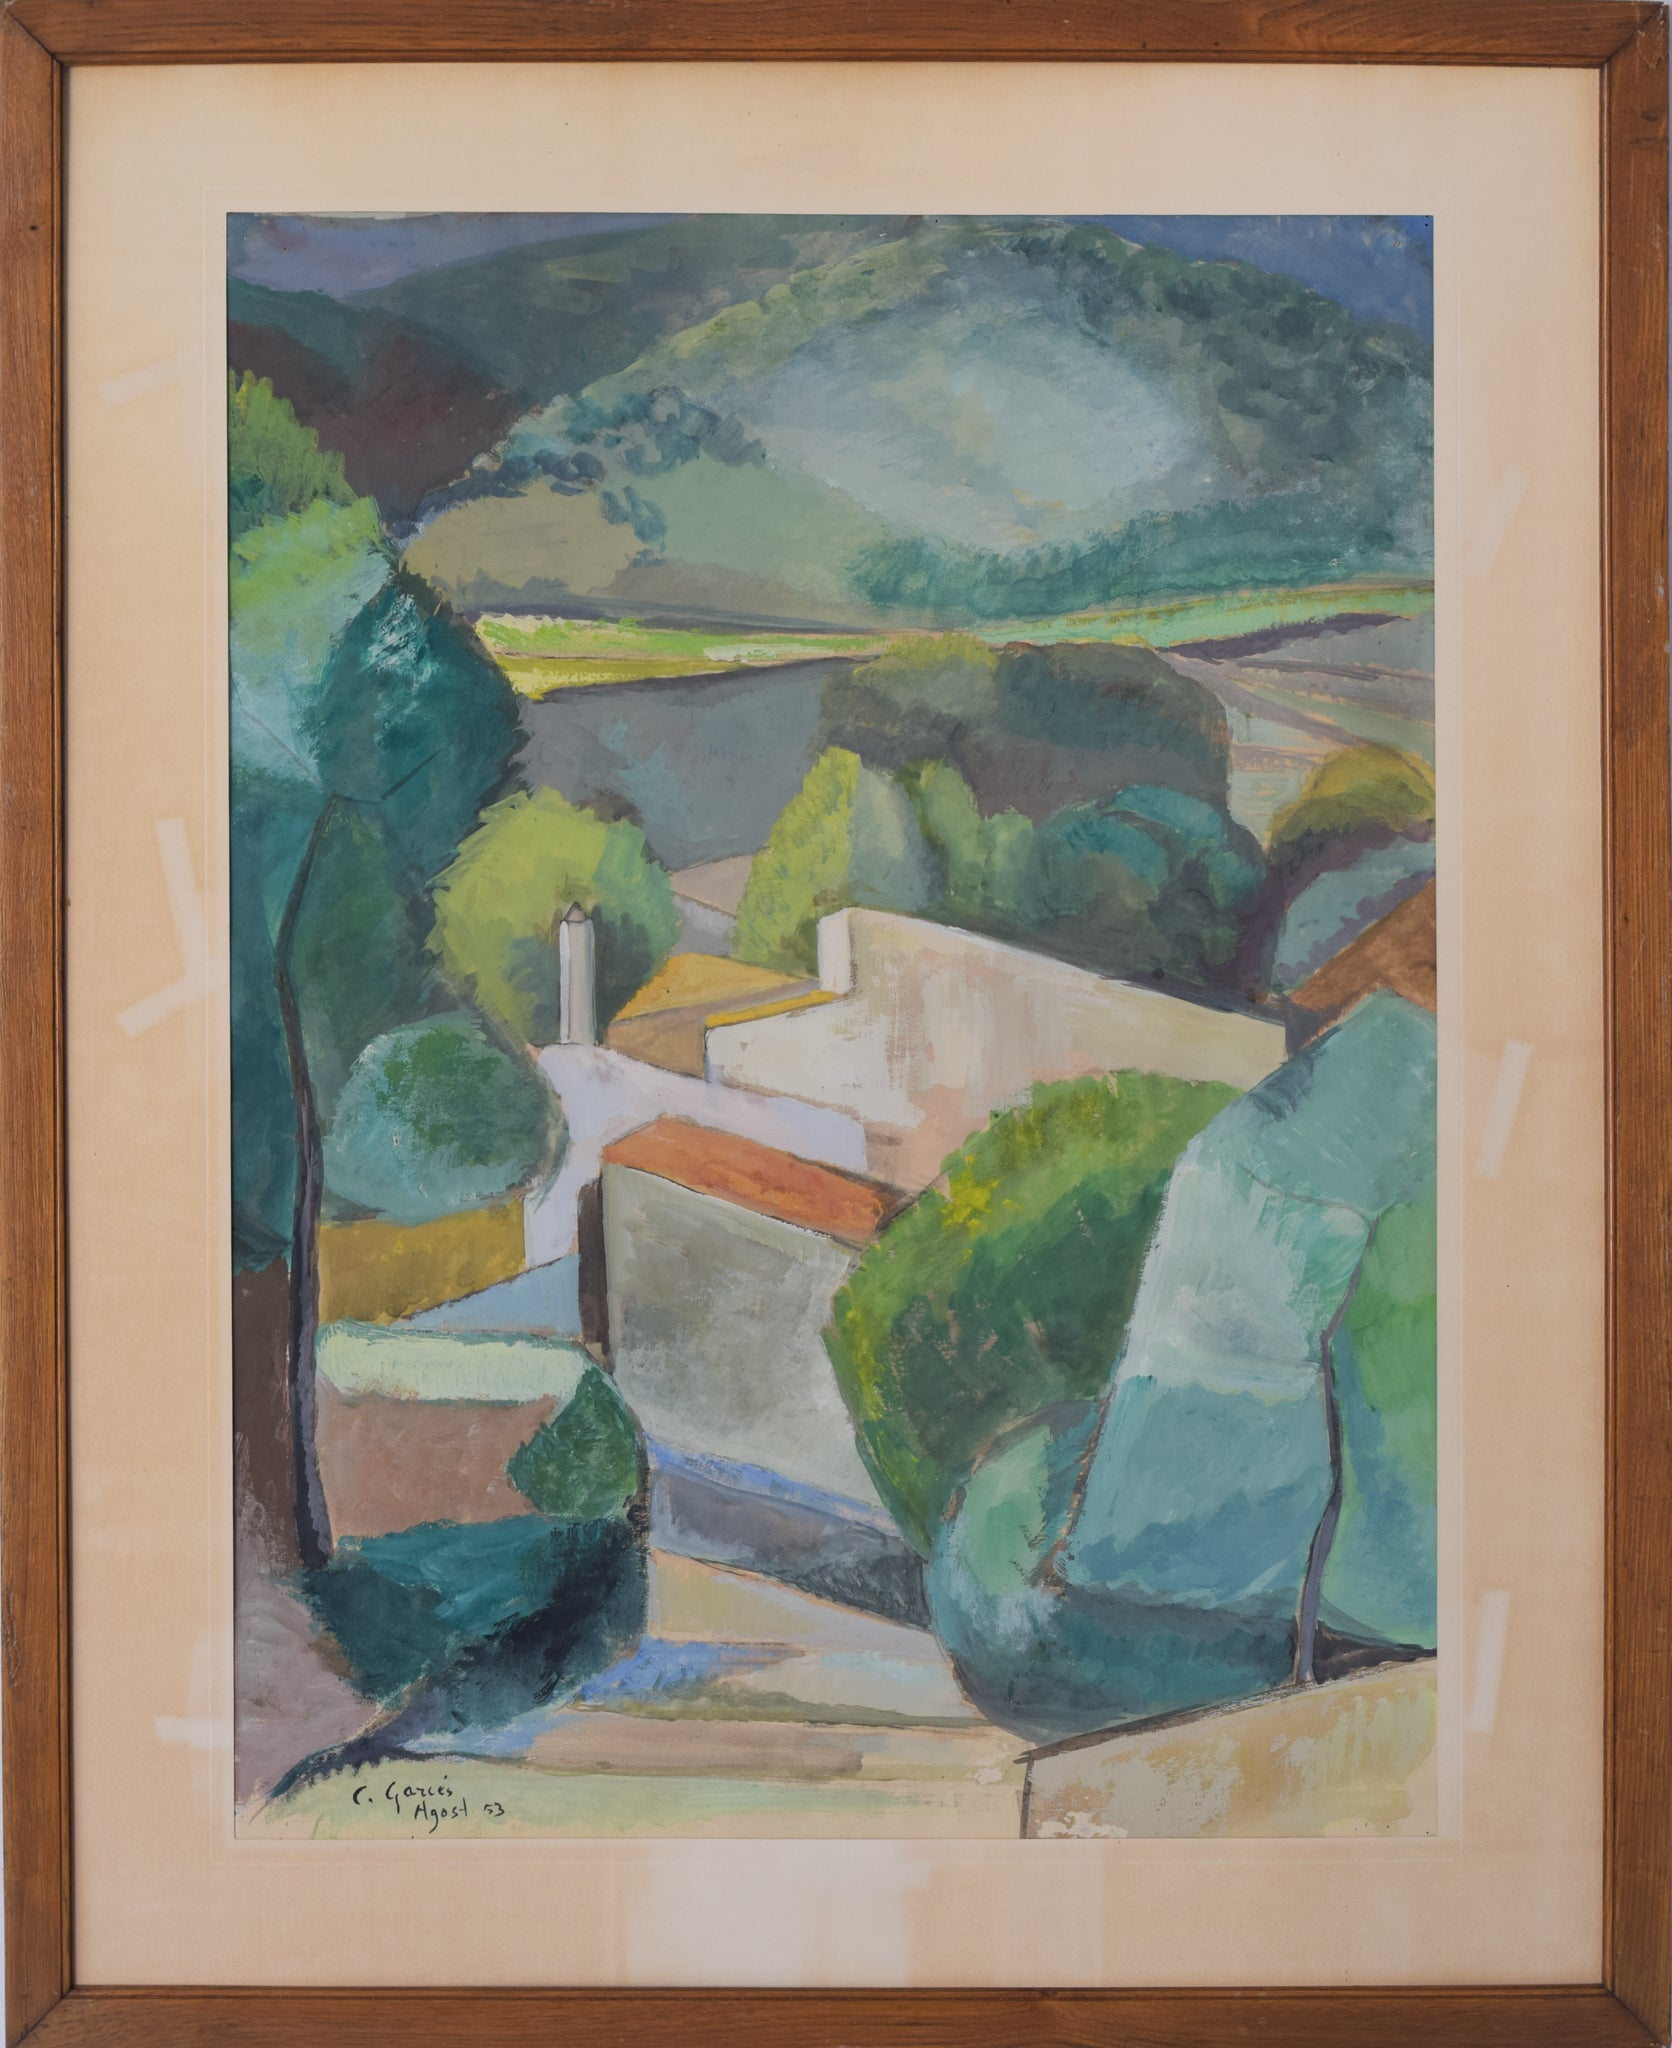 Cubist Village in a Mountain Landscape_Framed